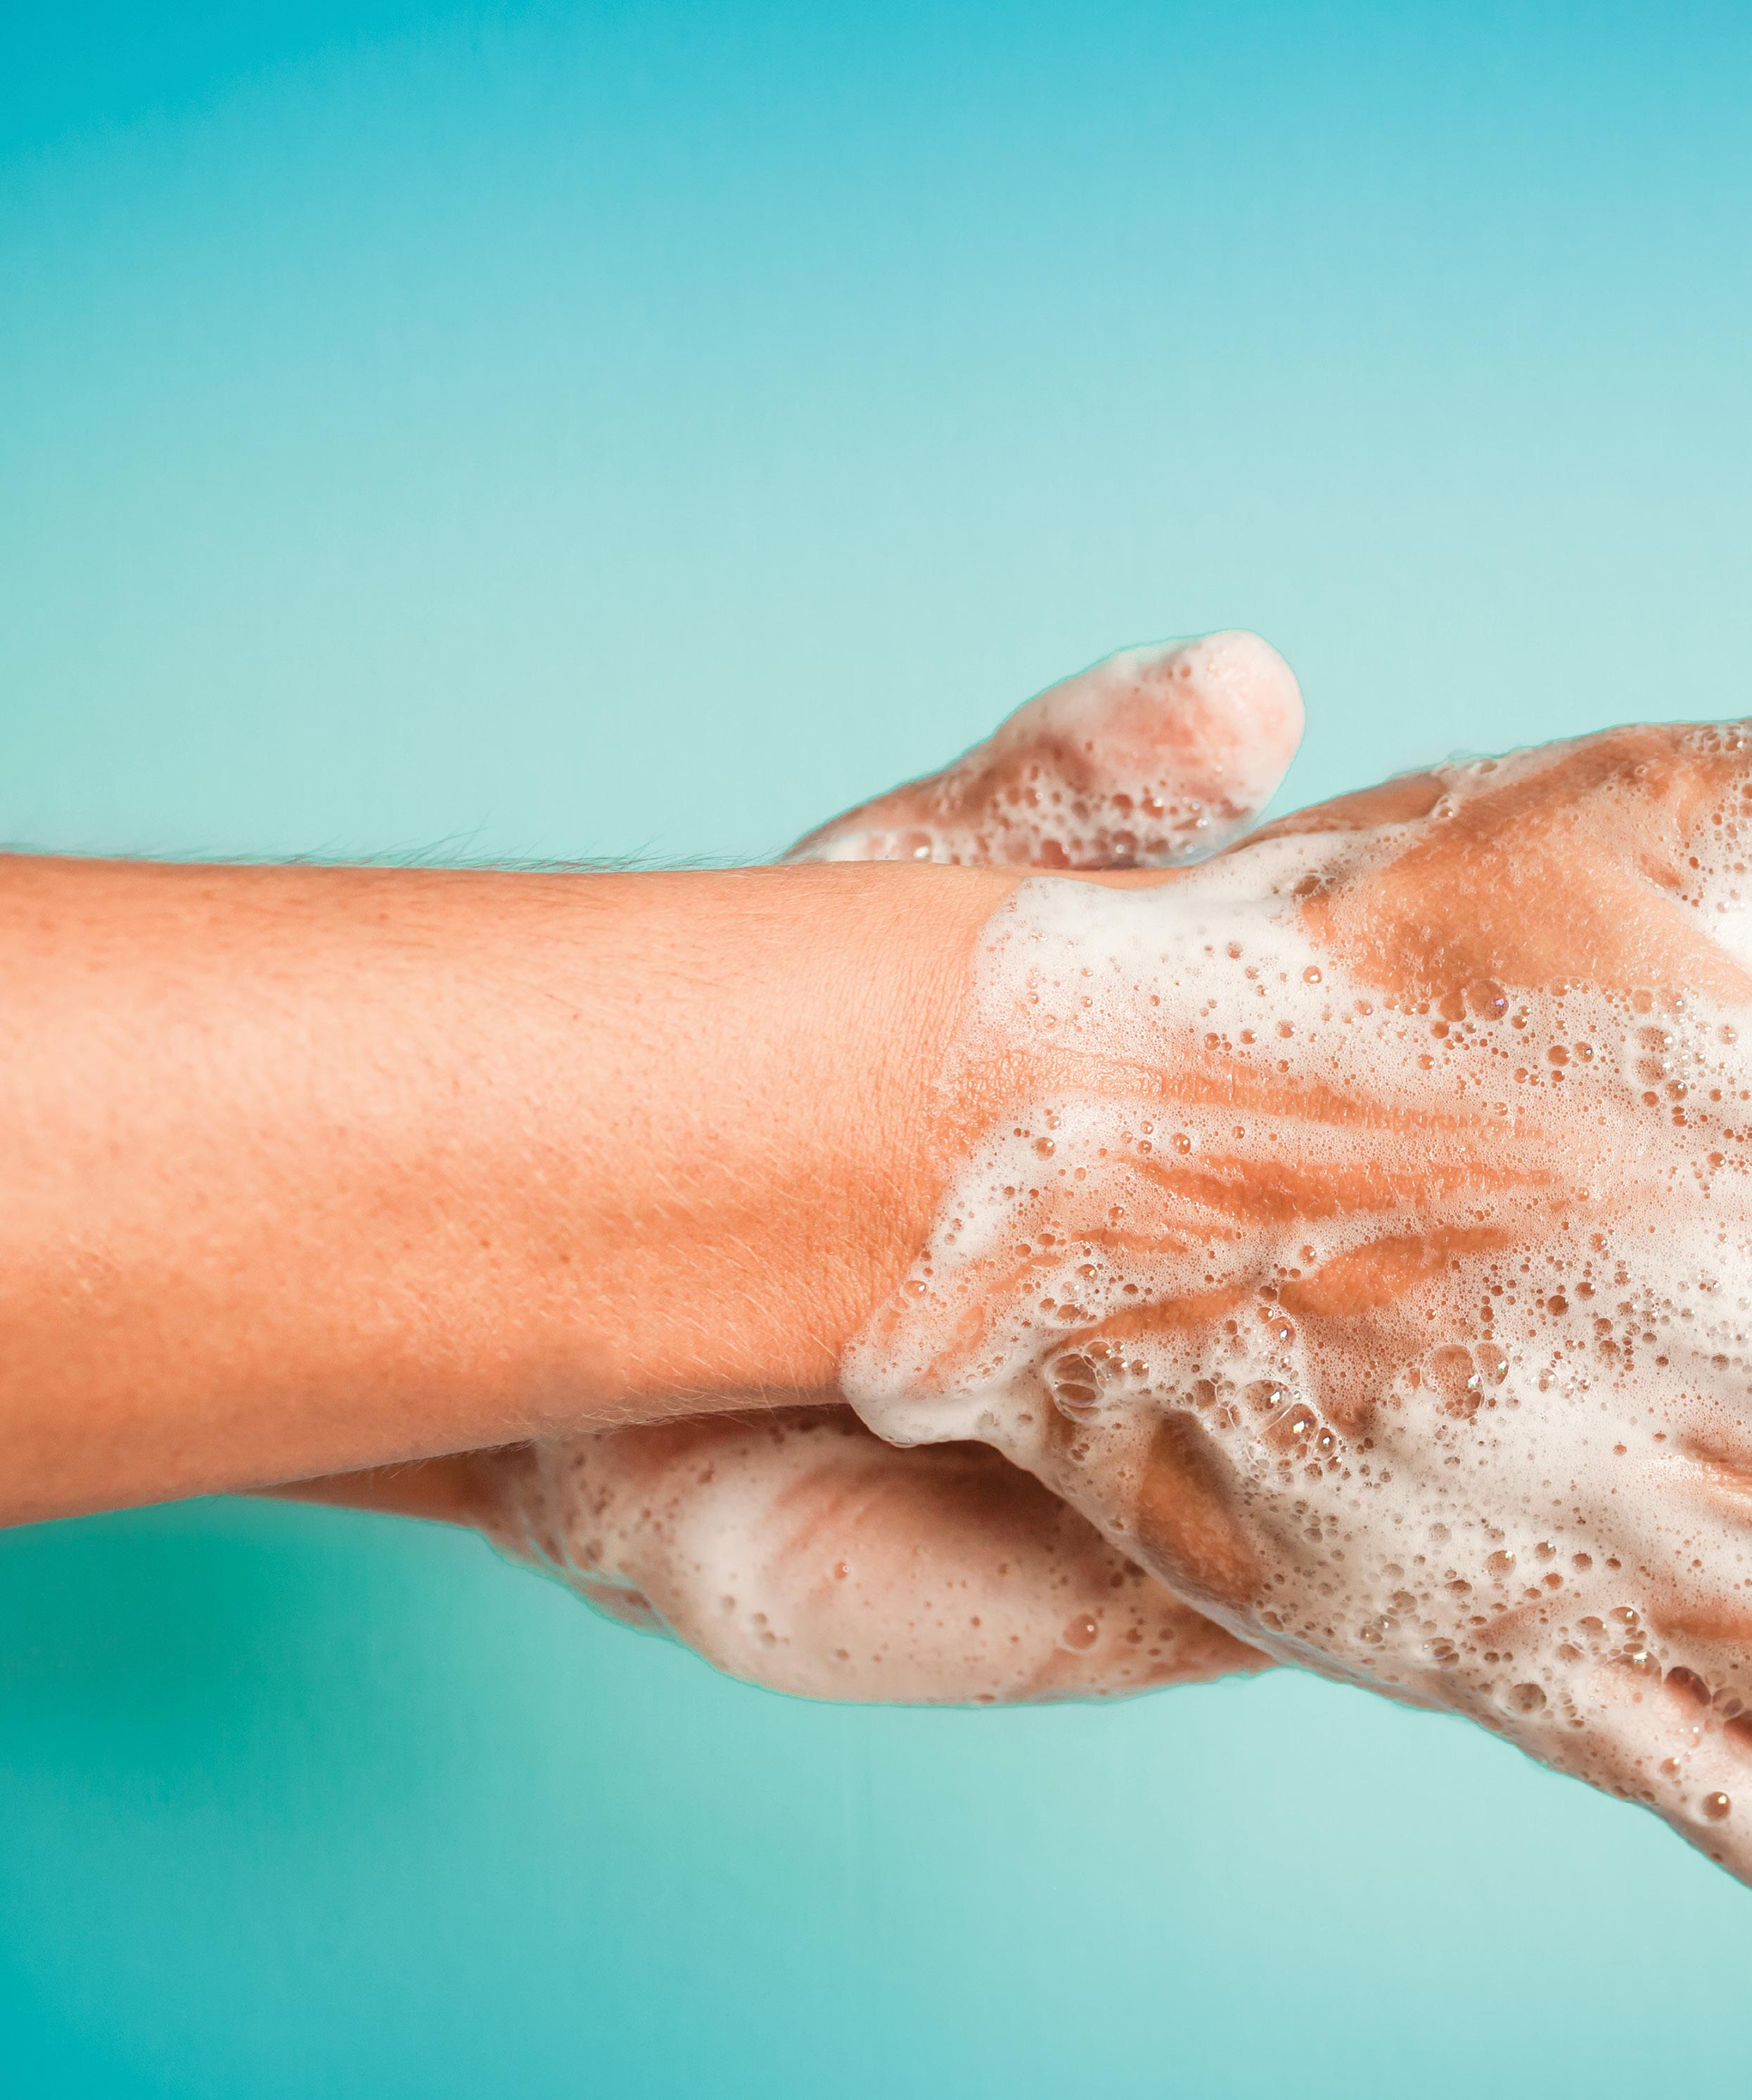 Page 24 of HAND HYGIENE